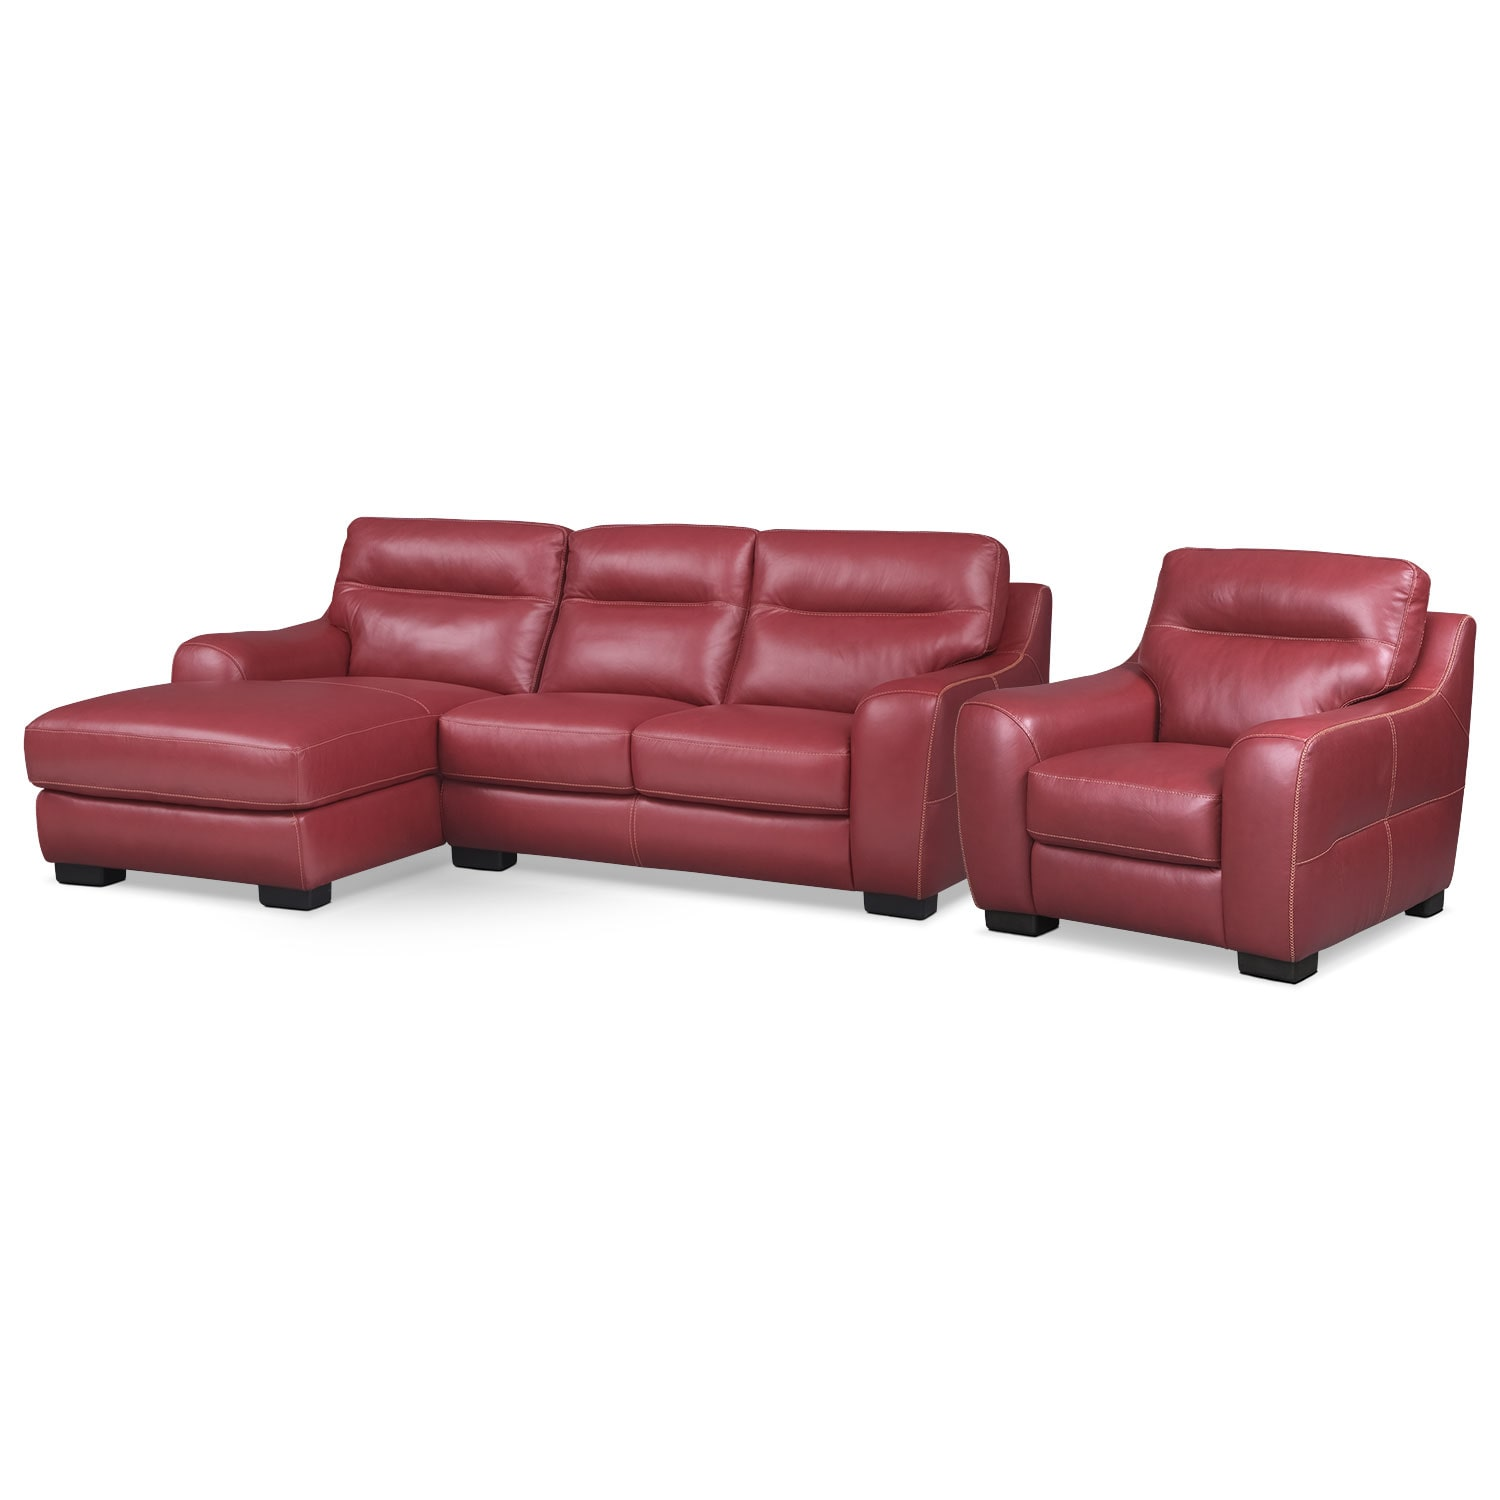 Living Room Furniture - Rocco Red 2 Pc. Left-Facing Chaise Sectional and Chair